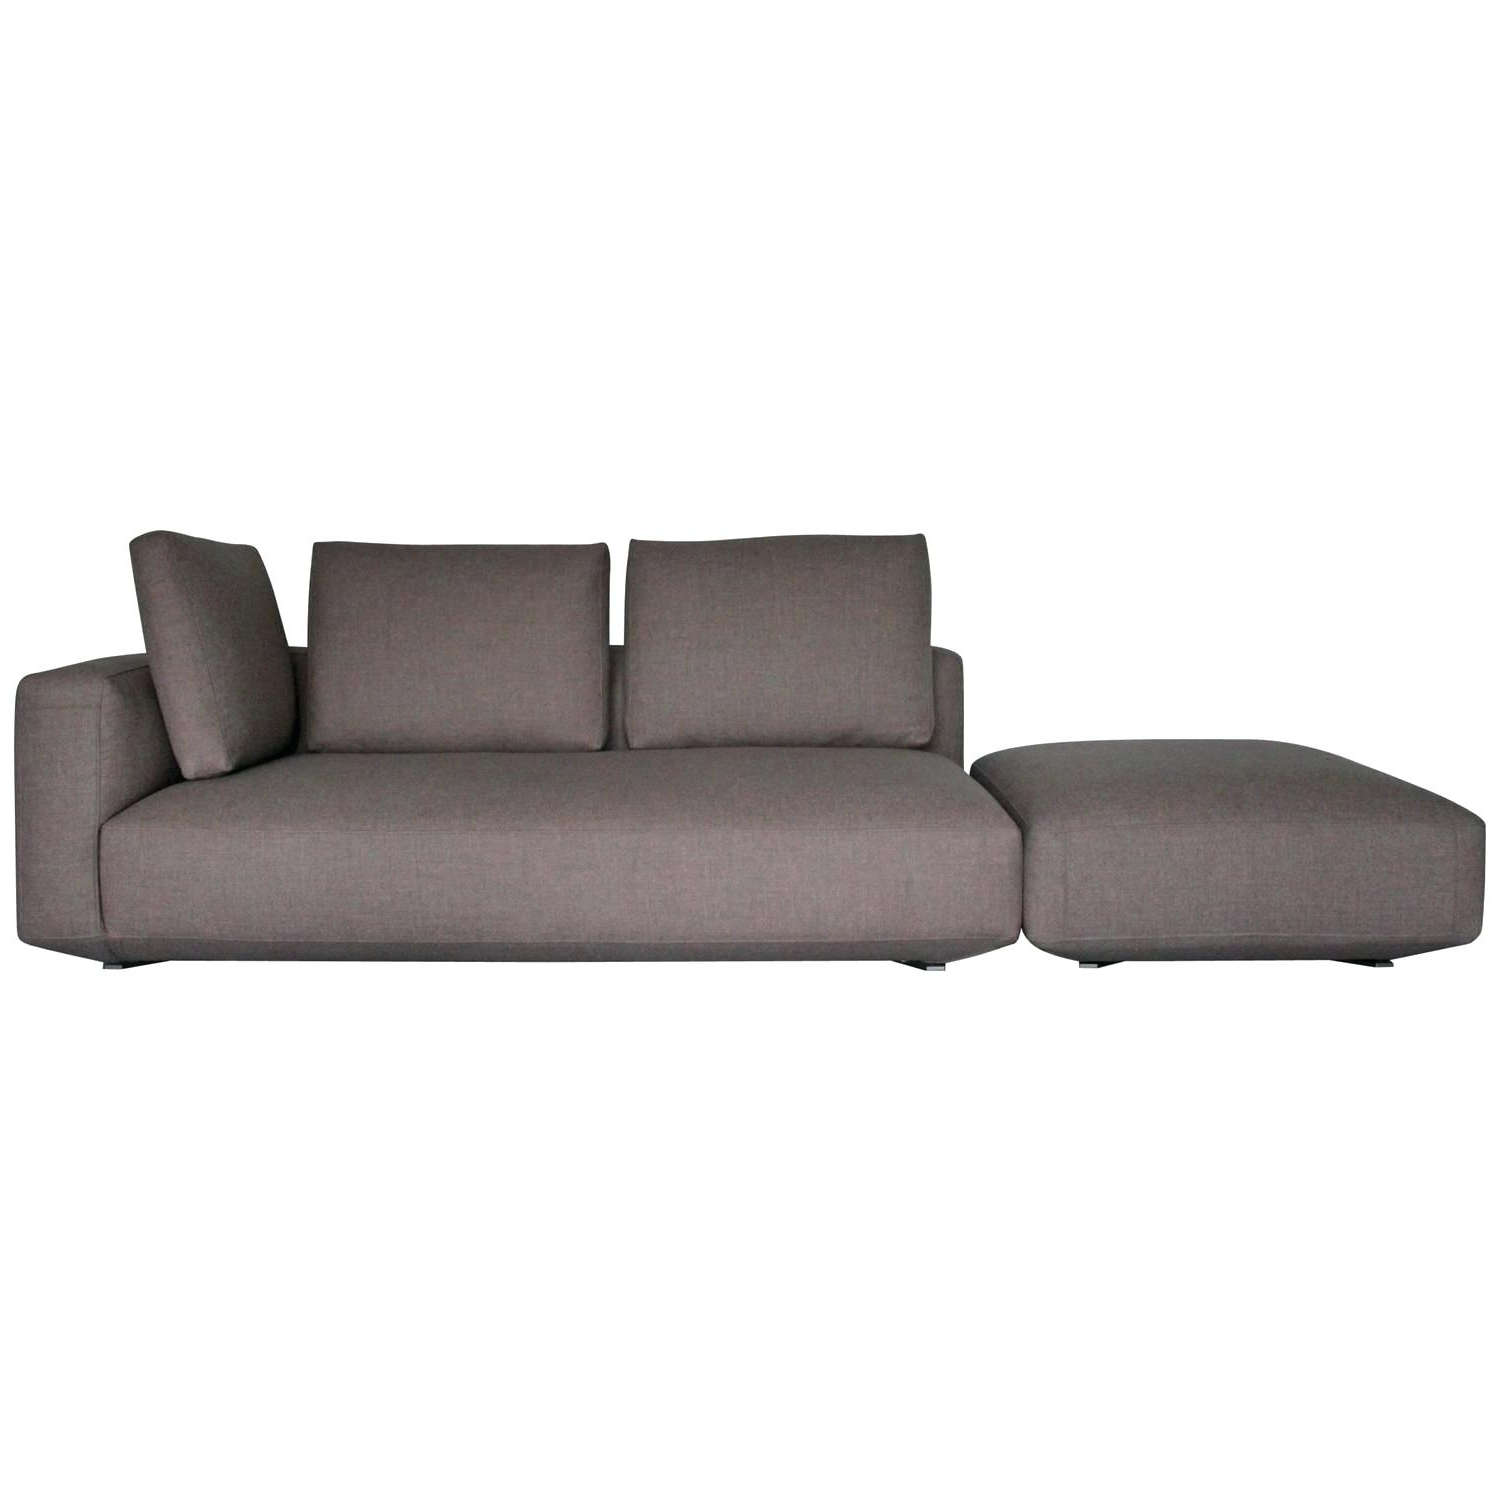 Trendy Sofa Ottoman Ottomans Beds Coffee Table Chaise With Storage Pertaining To Sofa Bed Chaises (View 15 of 15)